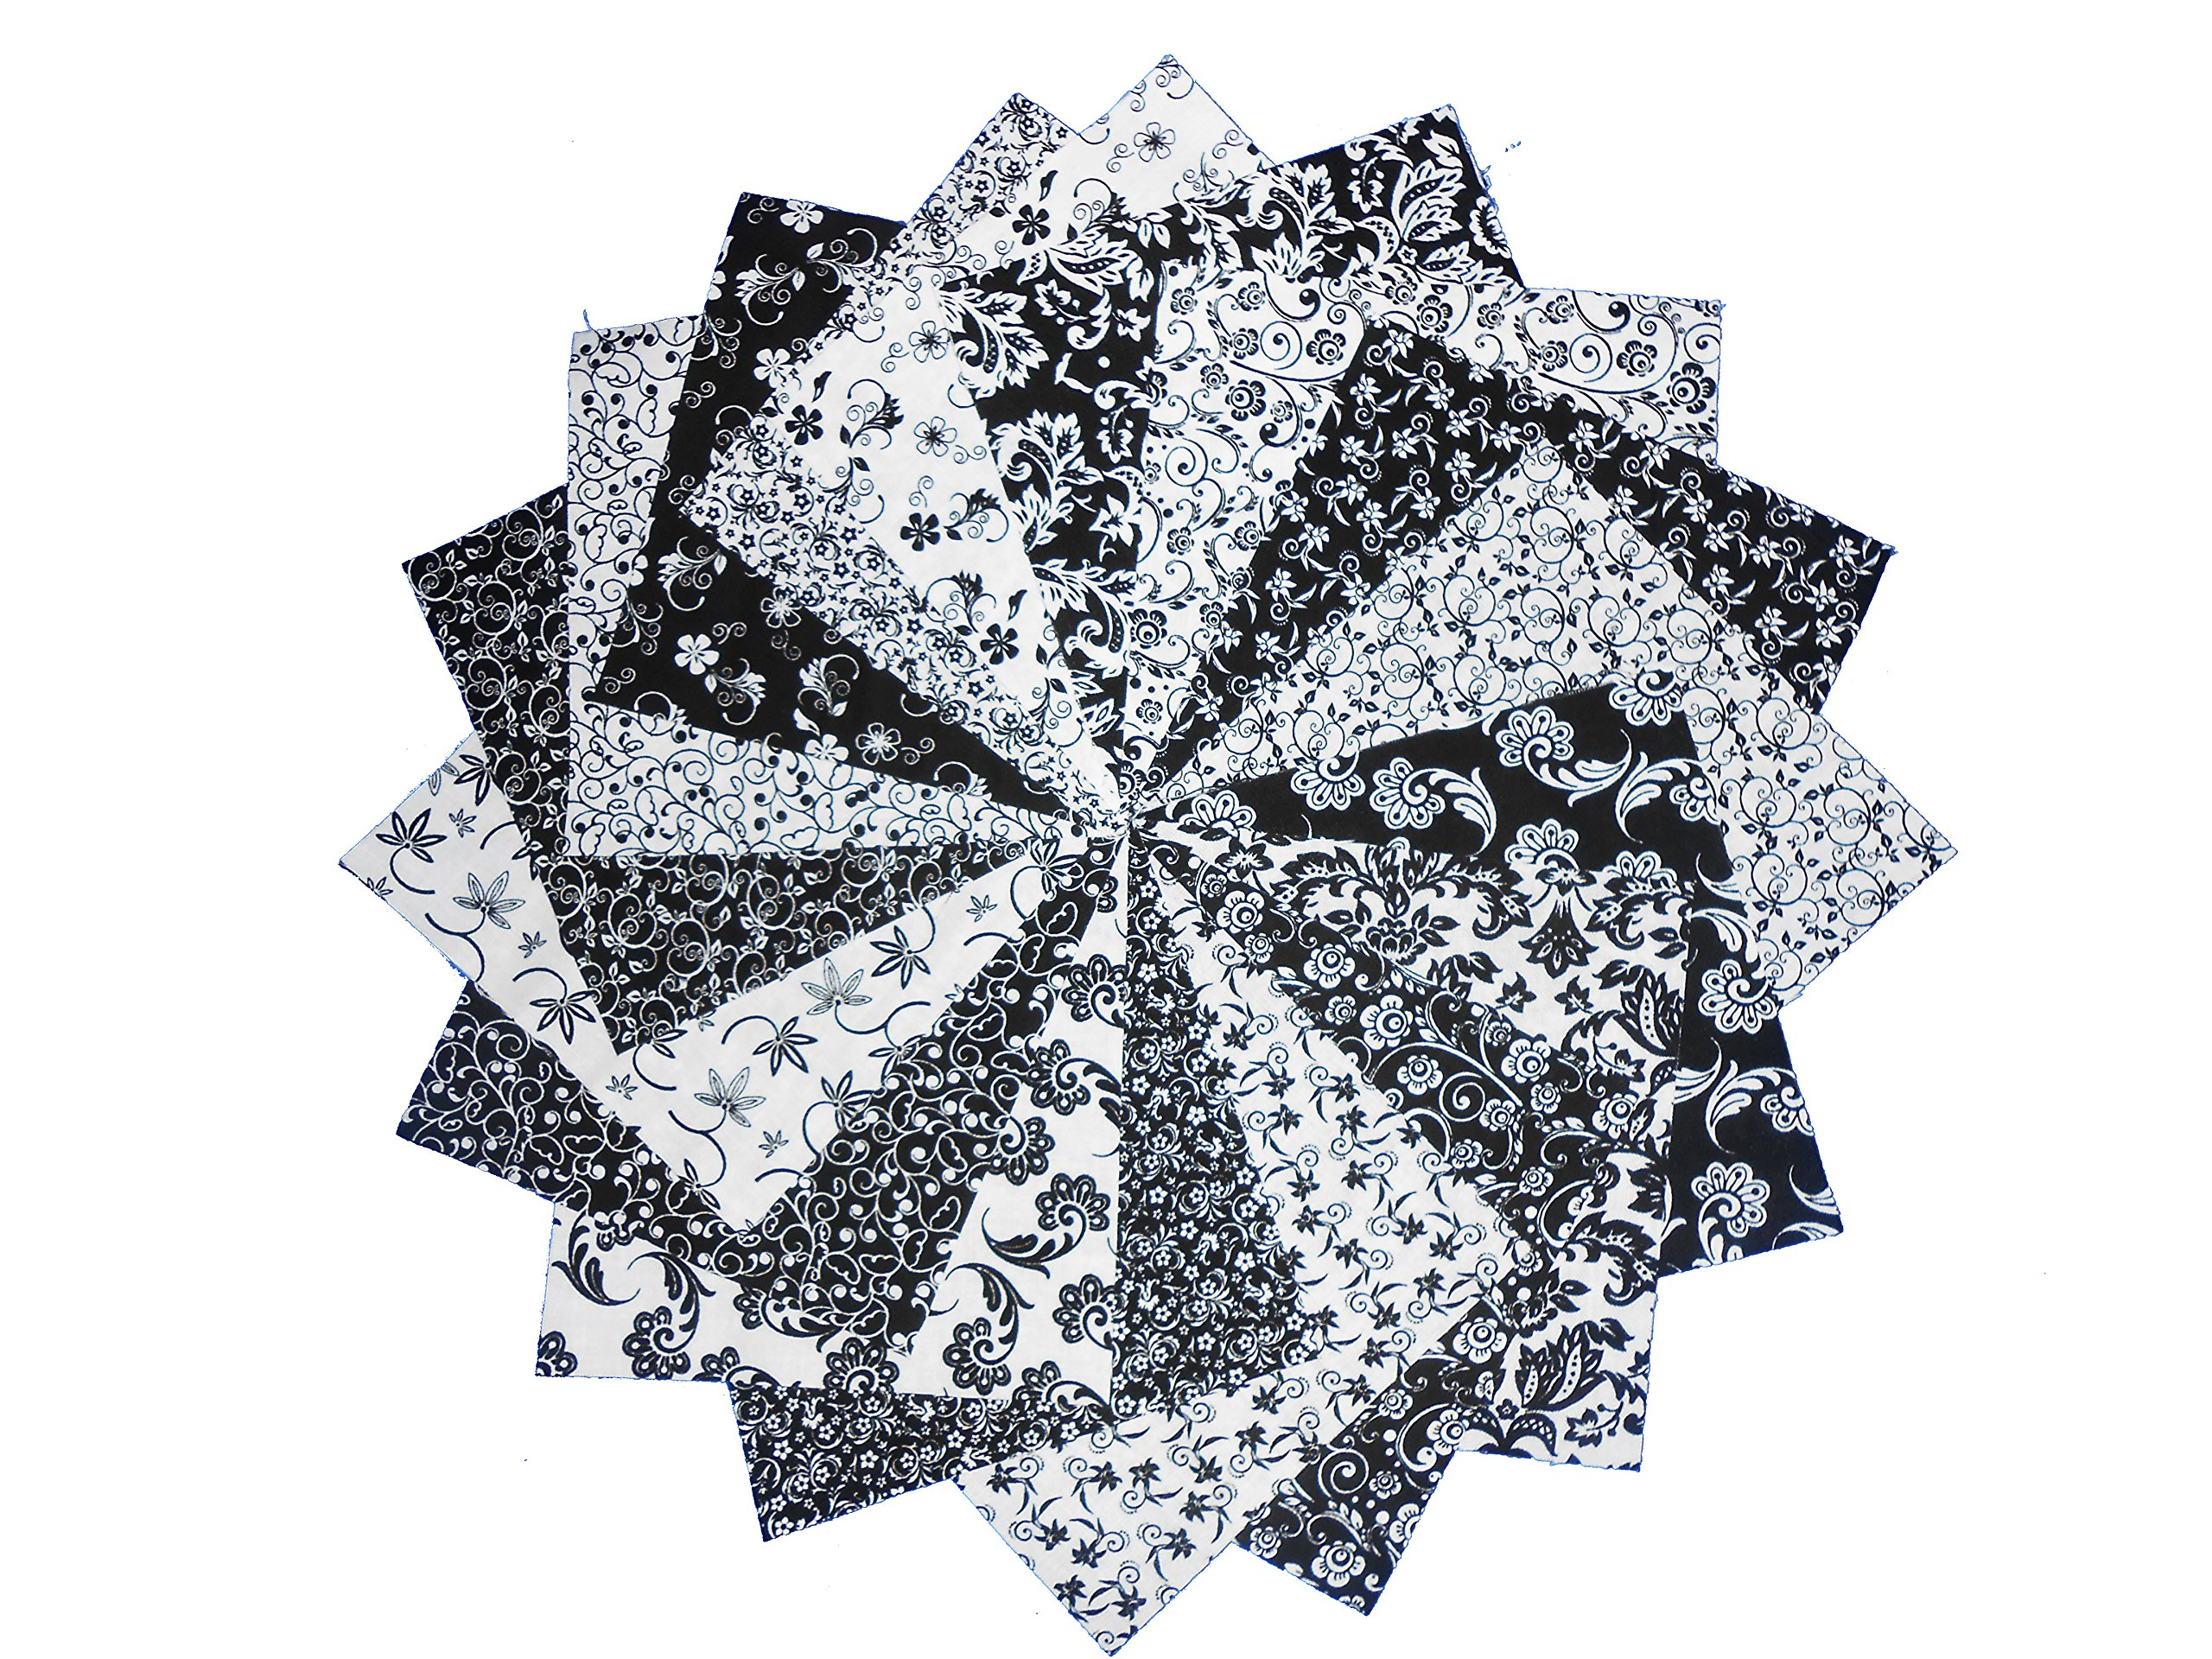 20 10 inch Beautiful Black/& WhiteDream Cotton Solids Layer Cake Quilting Fabric Squares-10 of Each Color